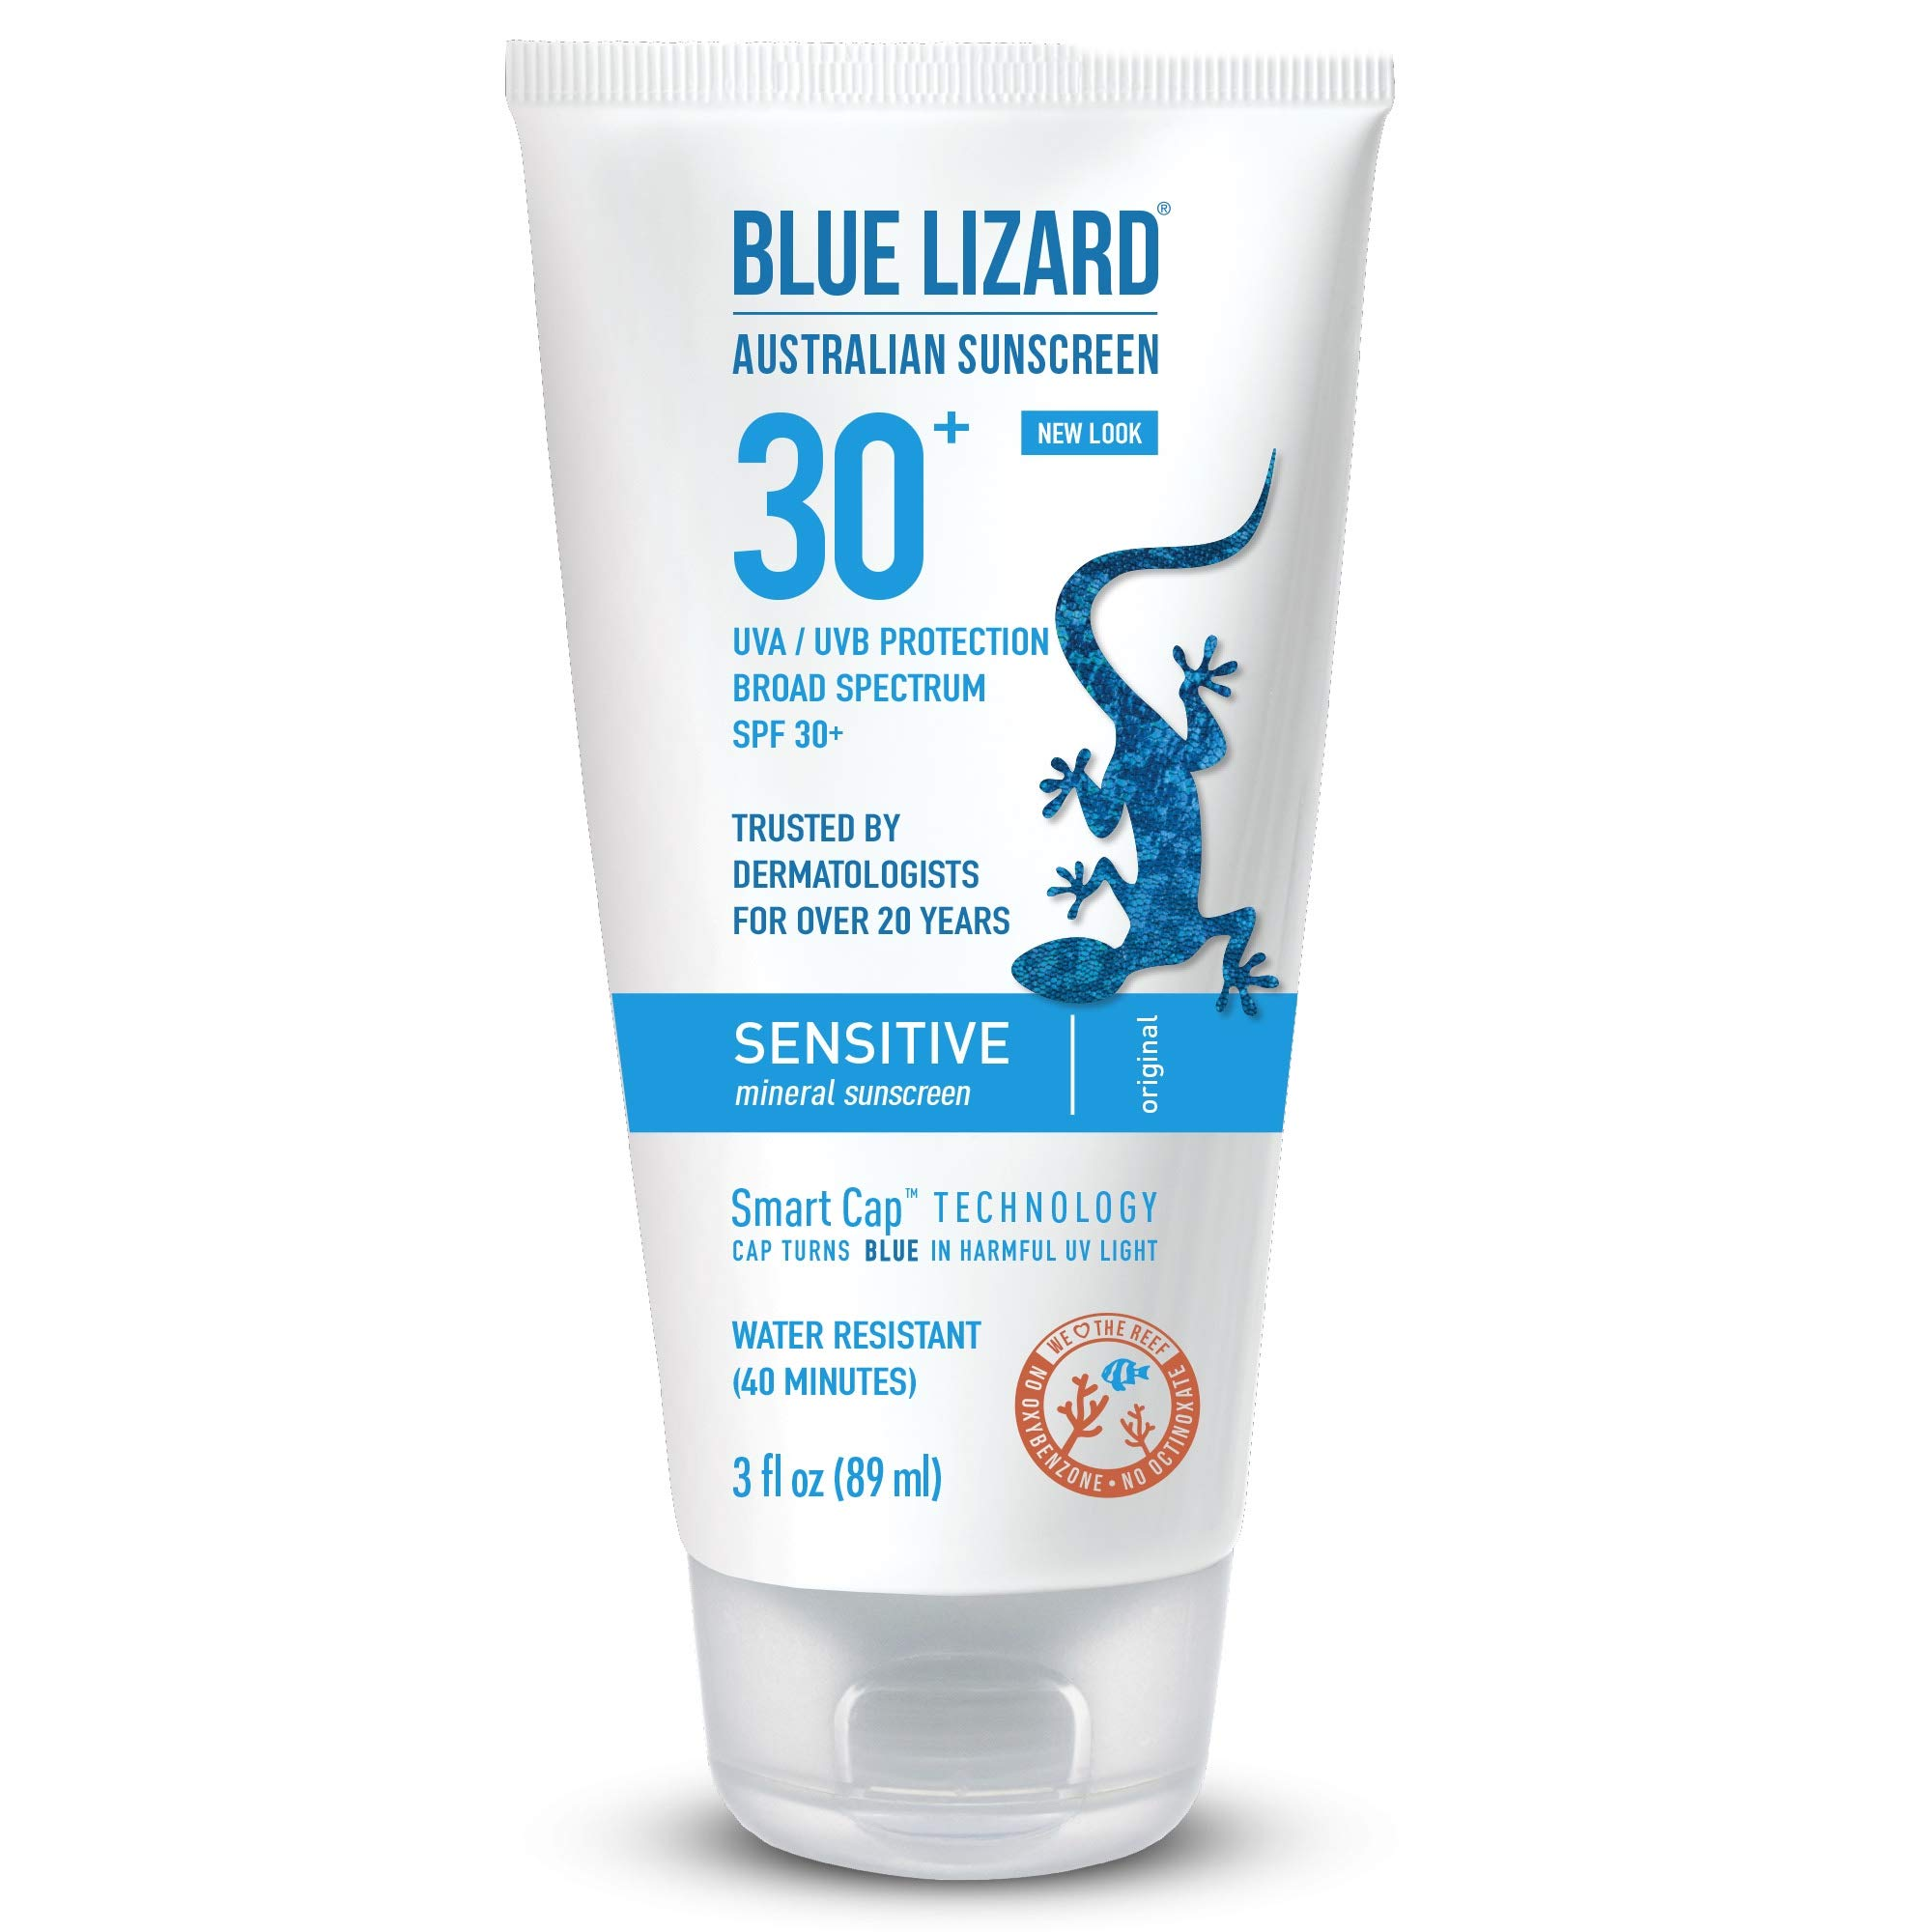 Blue Lizard Sensitive Mineral Sunscreen - No Chemical Actives - SPF 30+ UVA/UVB Protection, 3 oz by BLUE LIZARD